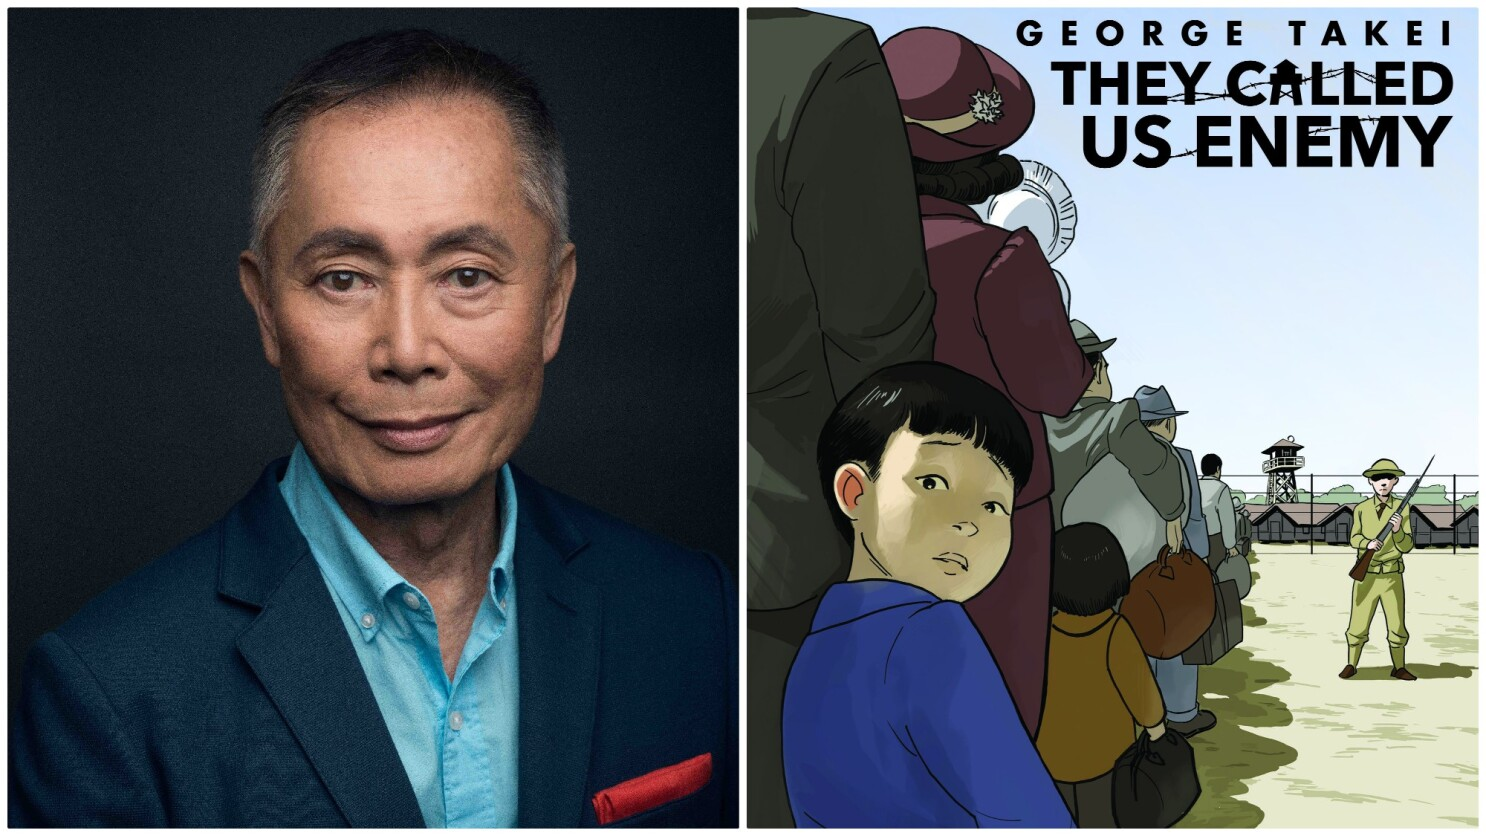 George Takei's graphic memoir tells of internment camps